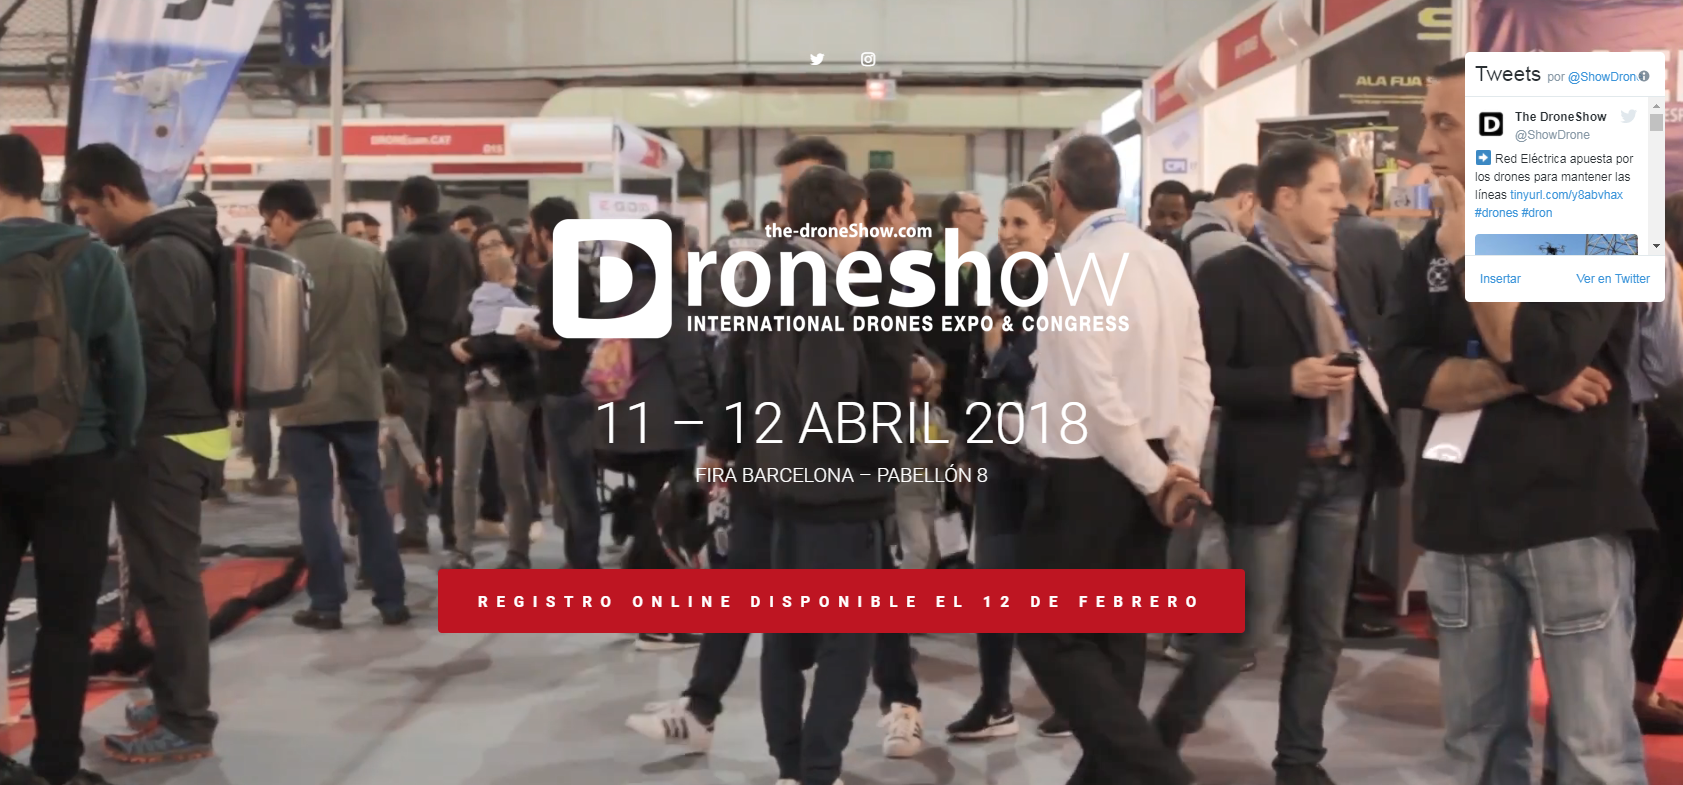 Drone Girl to keynote International Drones Expo in Spain